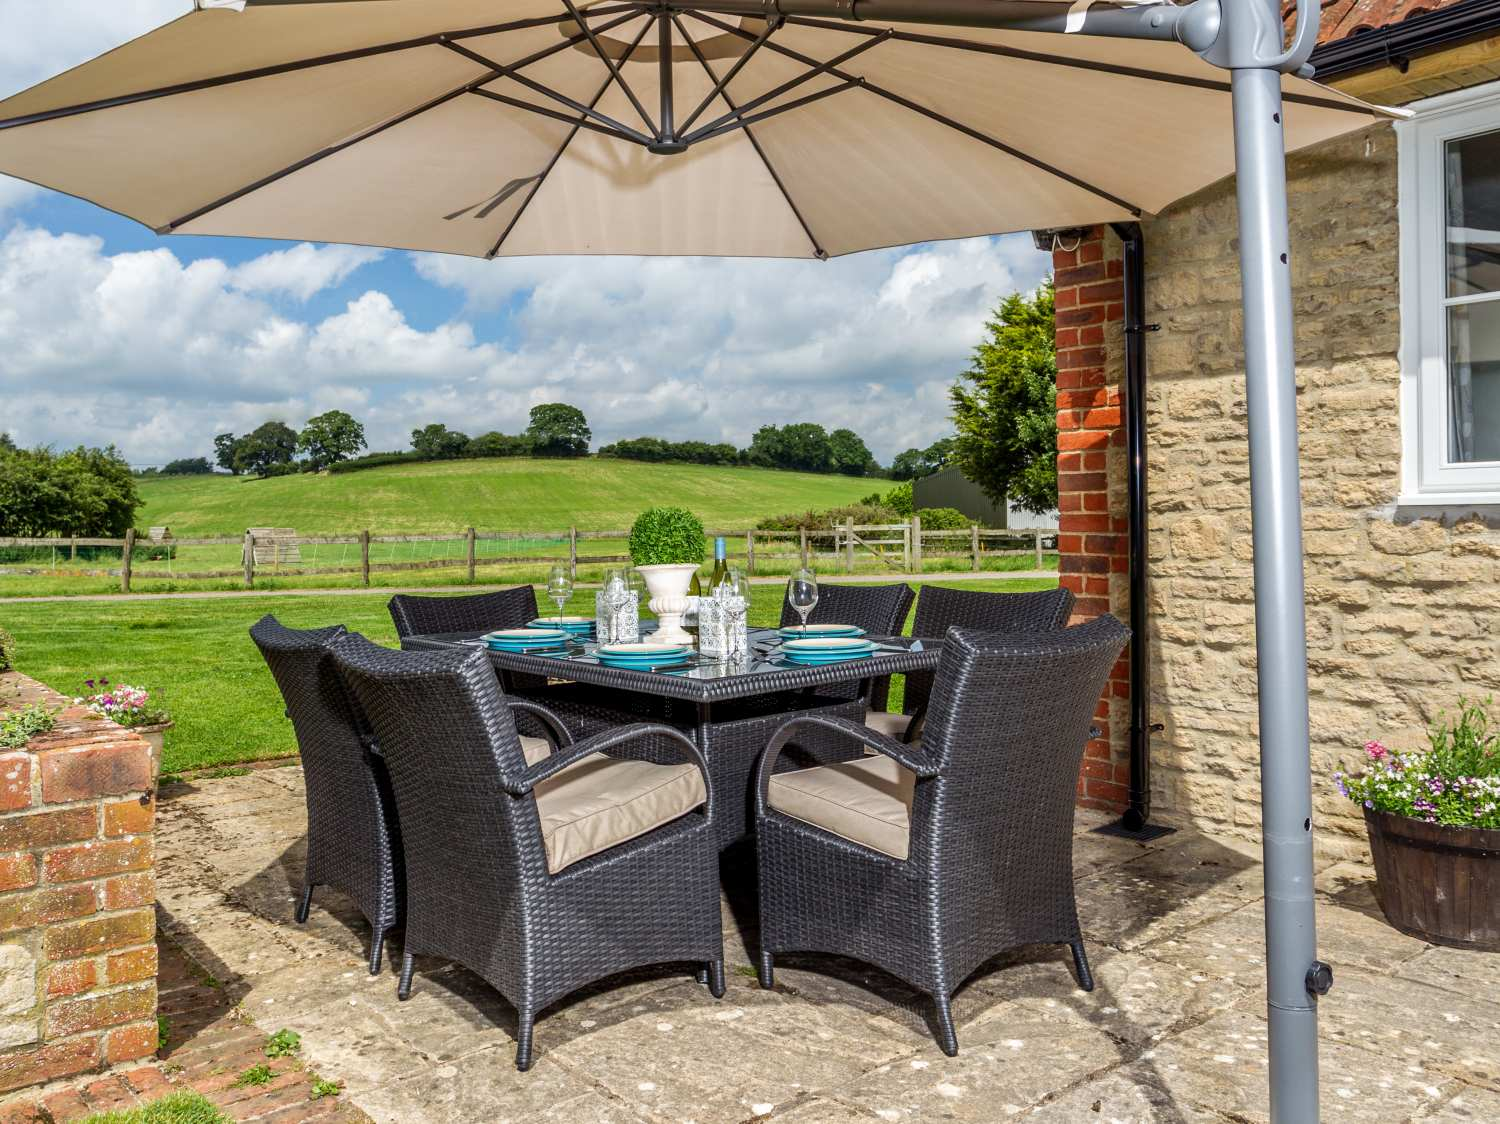 The Farm House Holiday Cottage Upper Seagry21